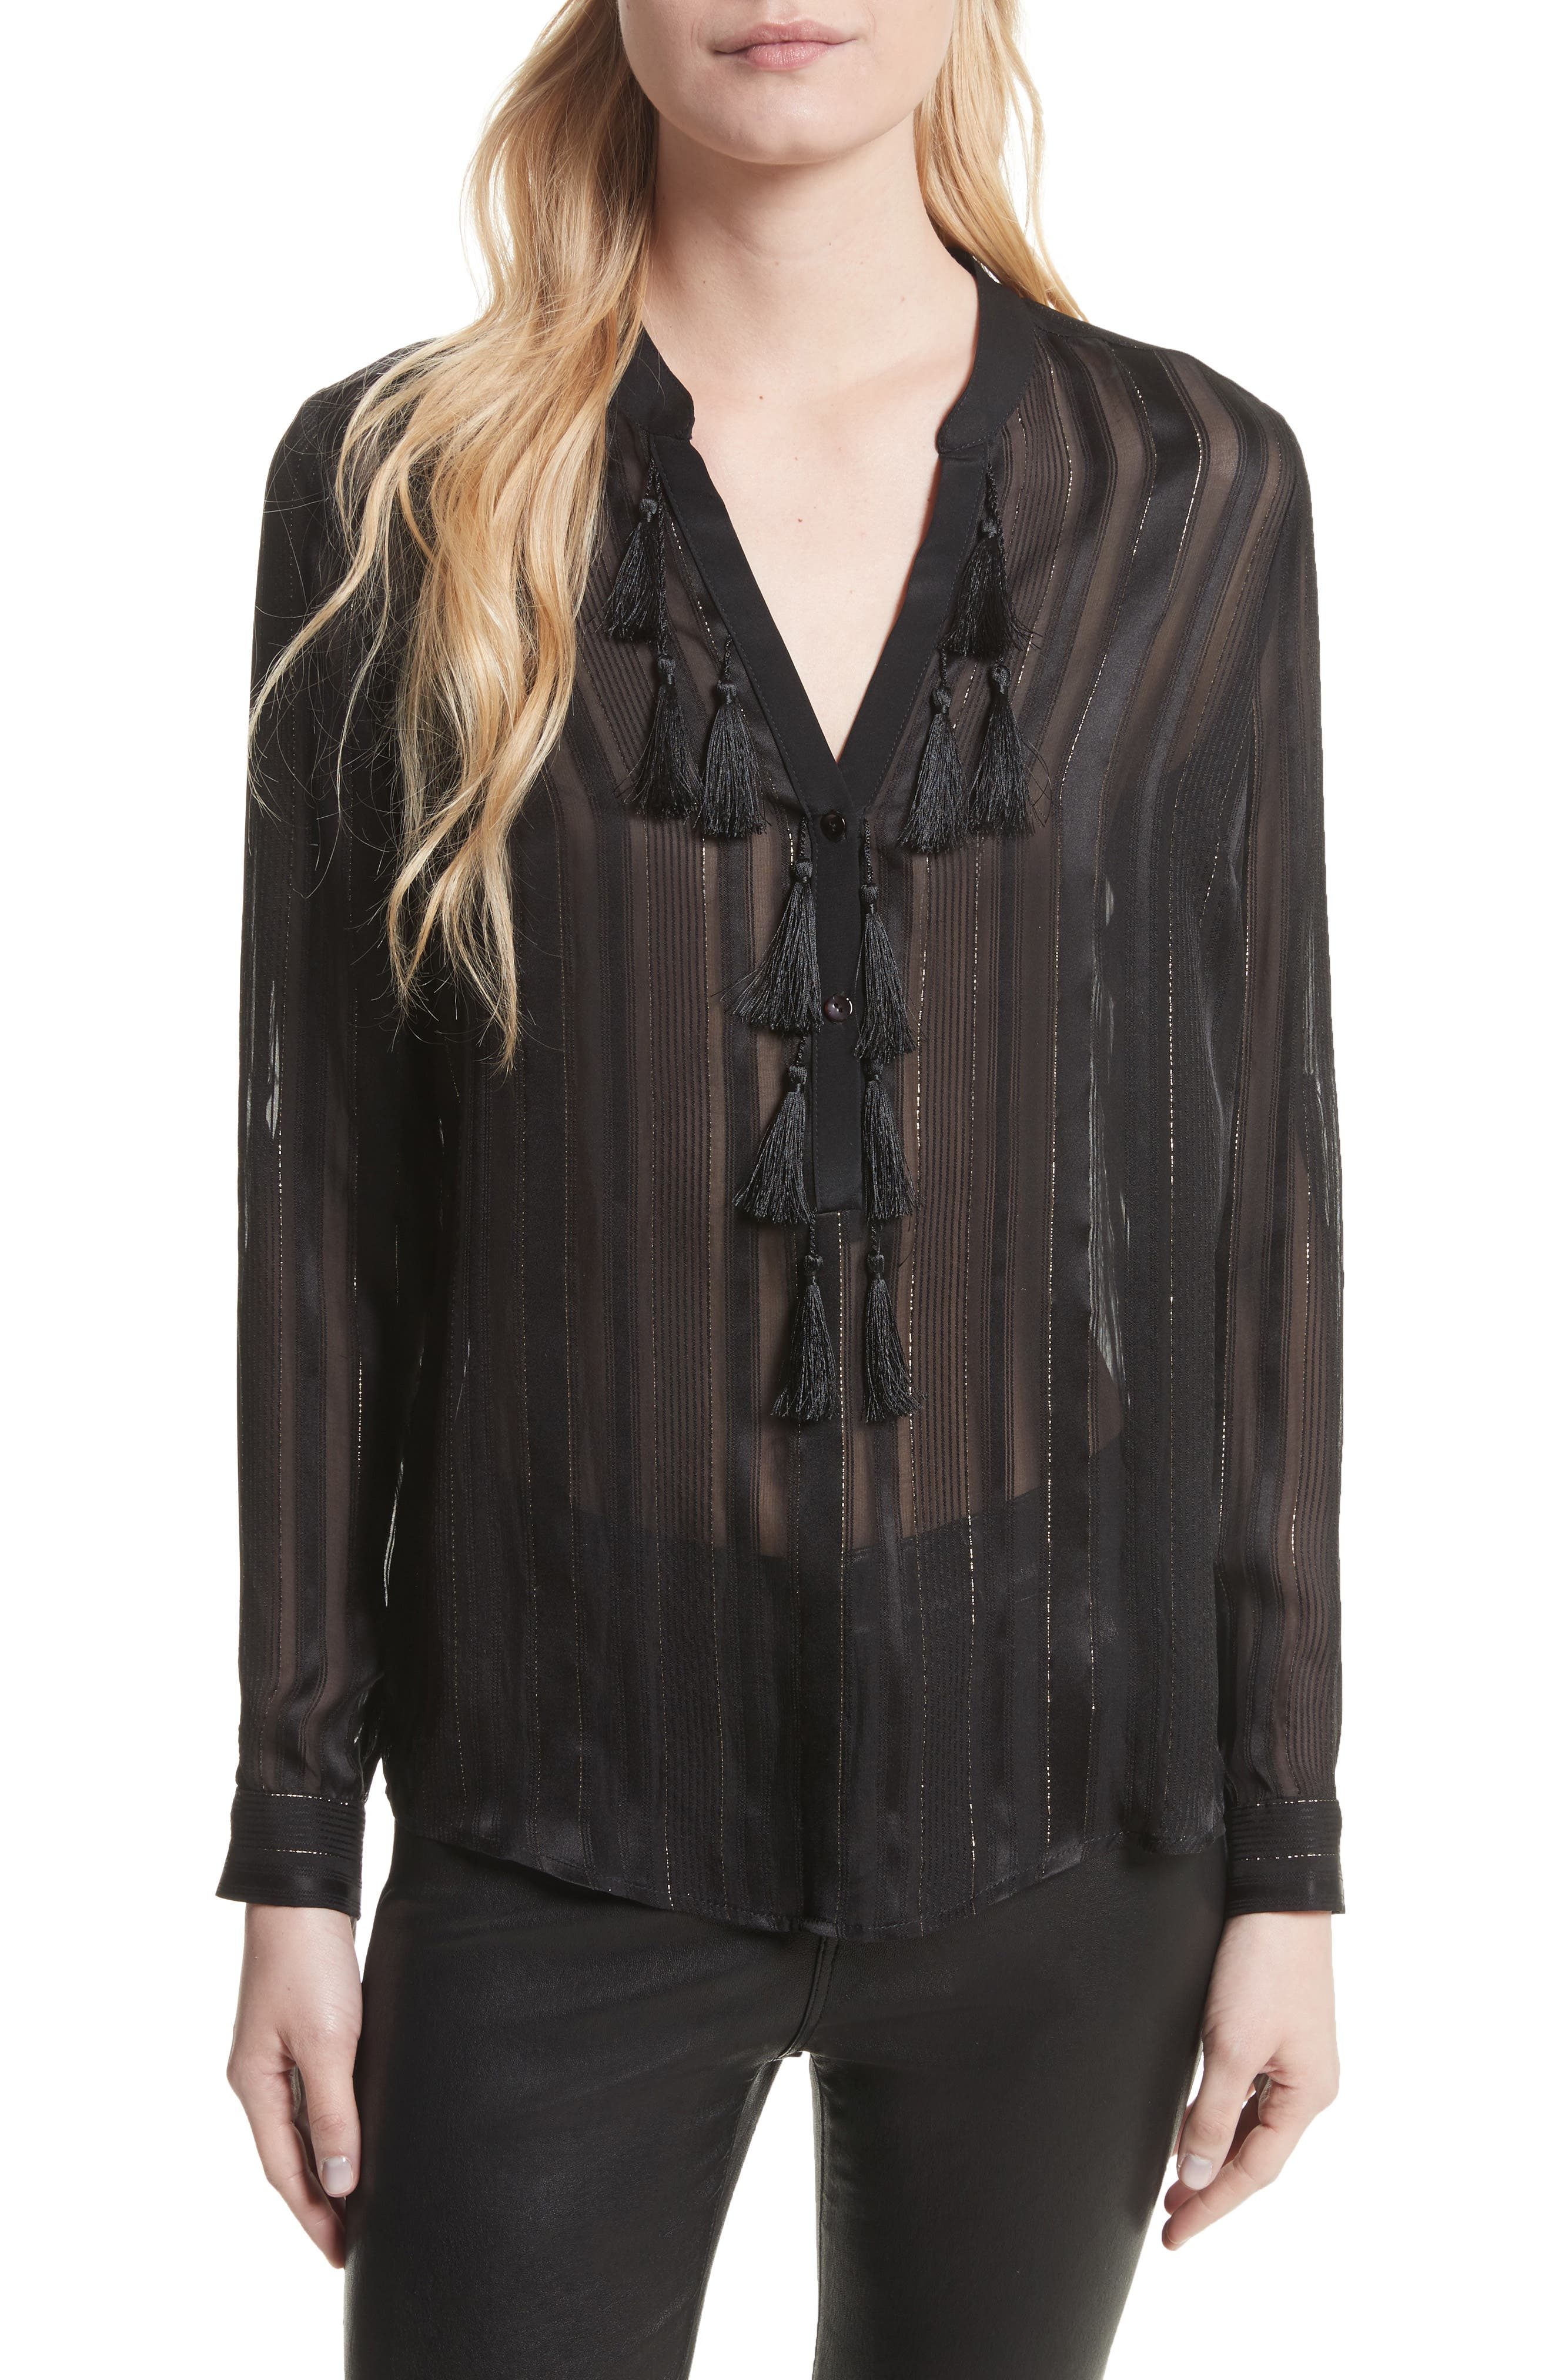 Nadja Tassel Blouse,                         Main,                         color, Black/ Gold